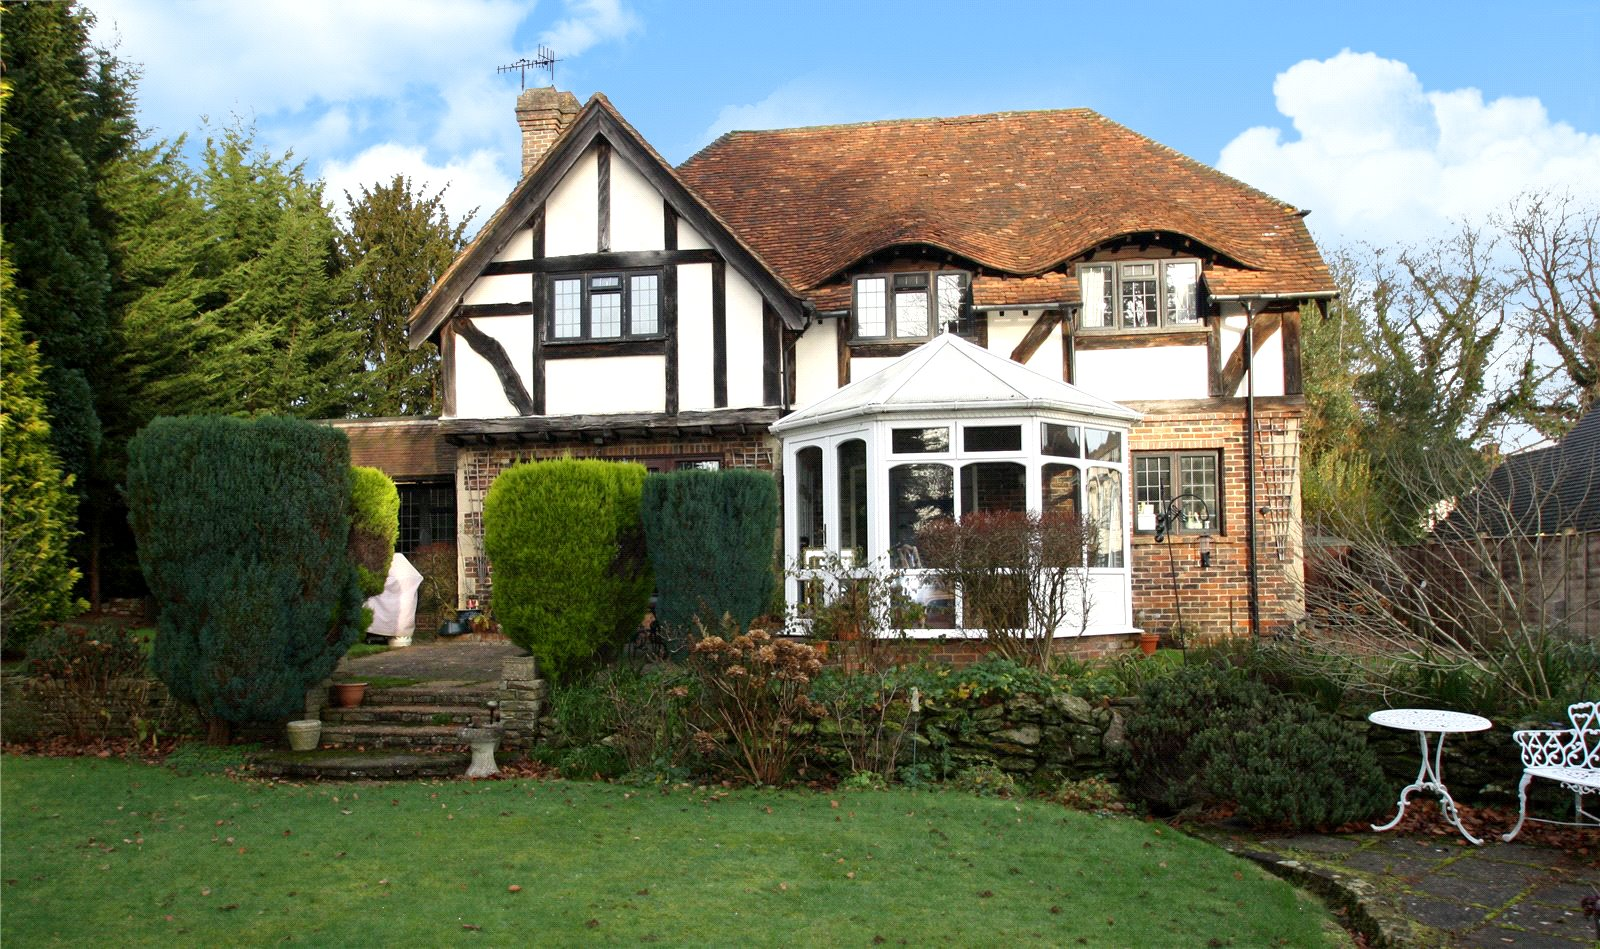 East Hill, Oxted